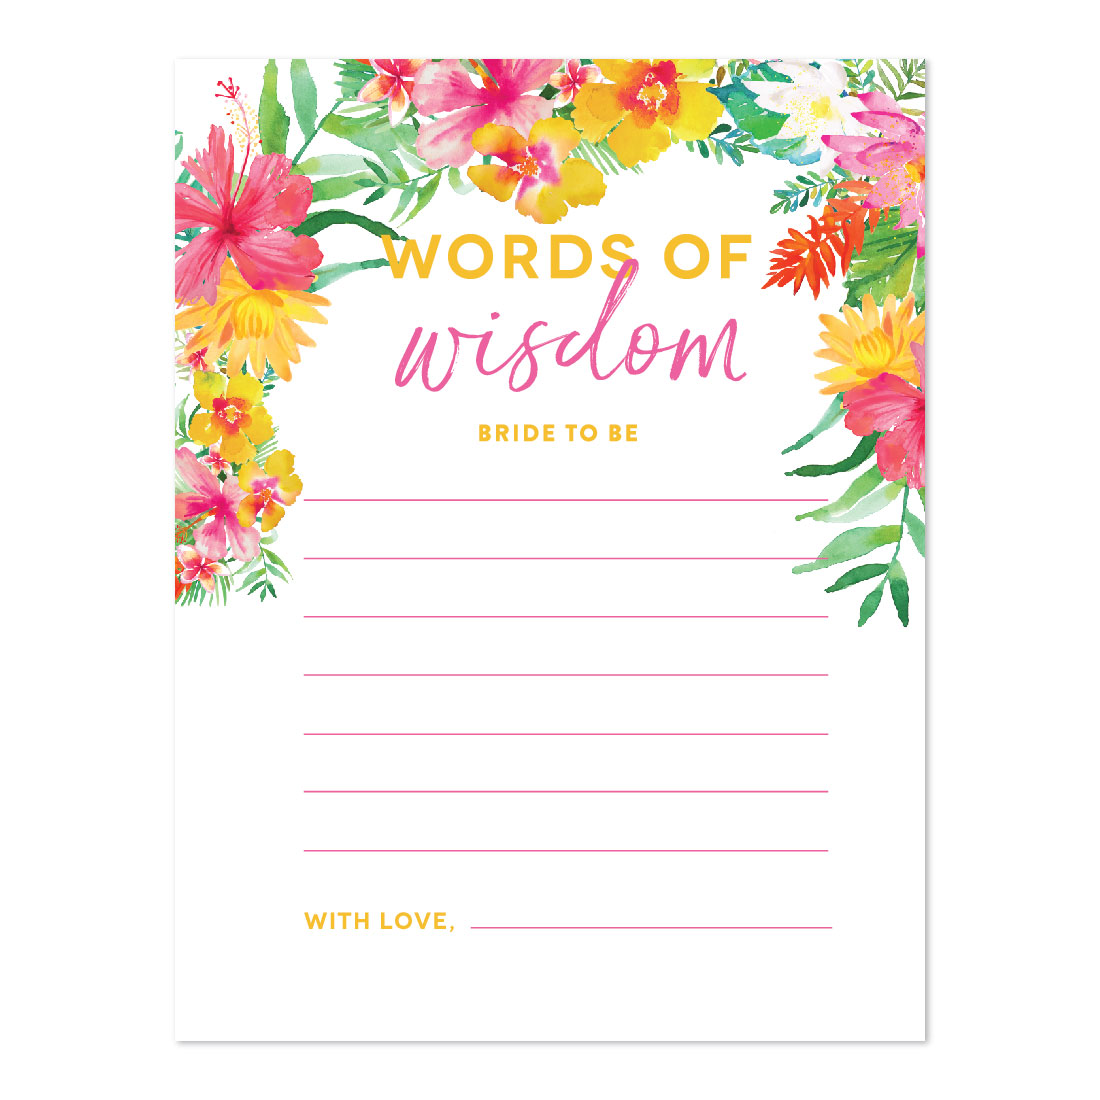 Tropical Floral Garden Party Wedding, Blank Words of Wisdom for the Bride-to-Be Bridal Shower Cards, 20-Pack